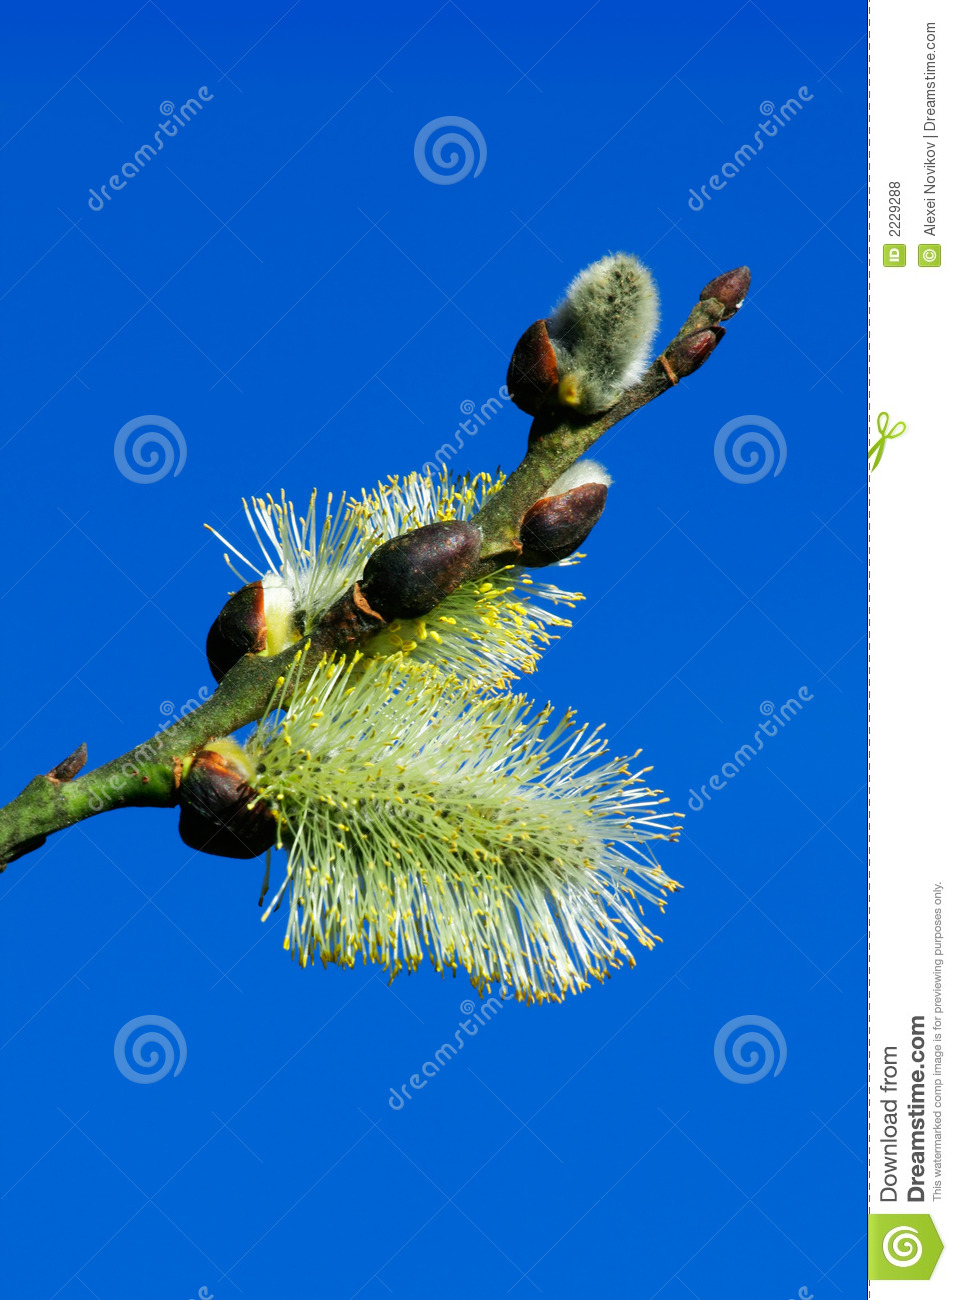 Catkins στενός χνουδωτός μεταξωτός επάνω